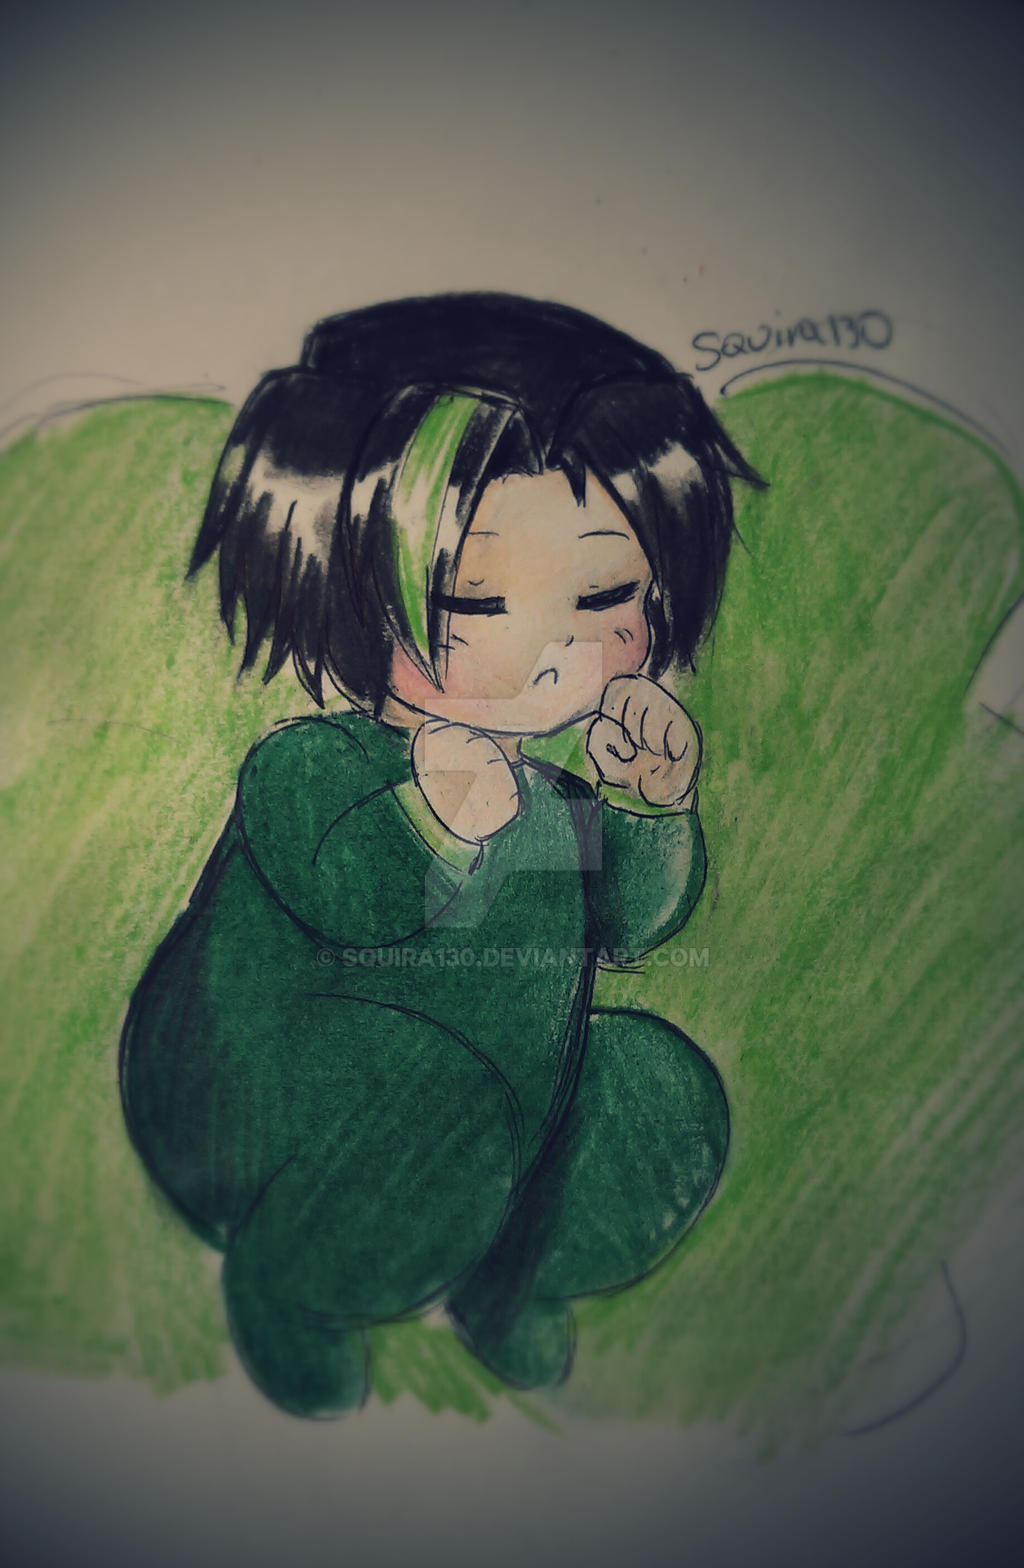 Baby Morro by Squira130 on DeviantArt